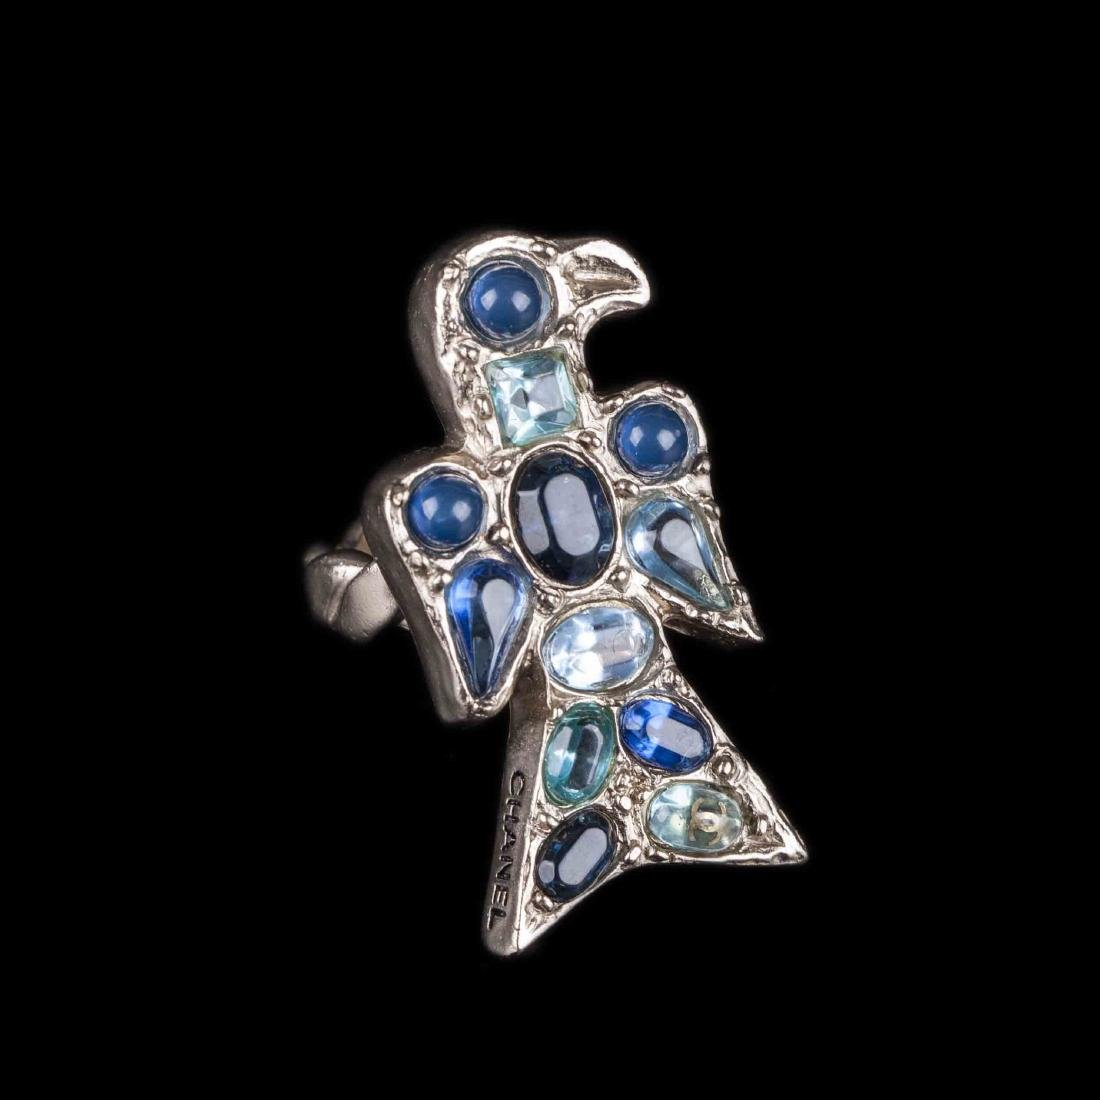 Chanel ring with gripoix glass. 2007